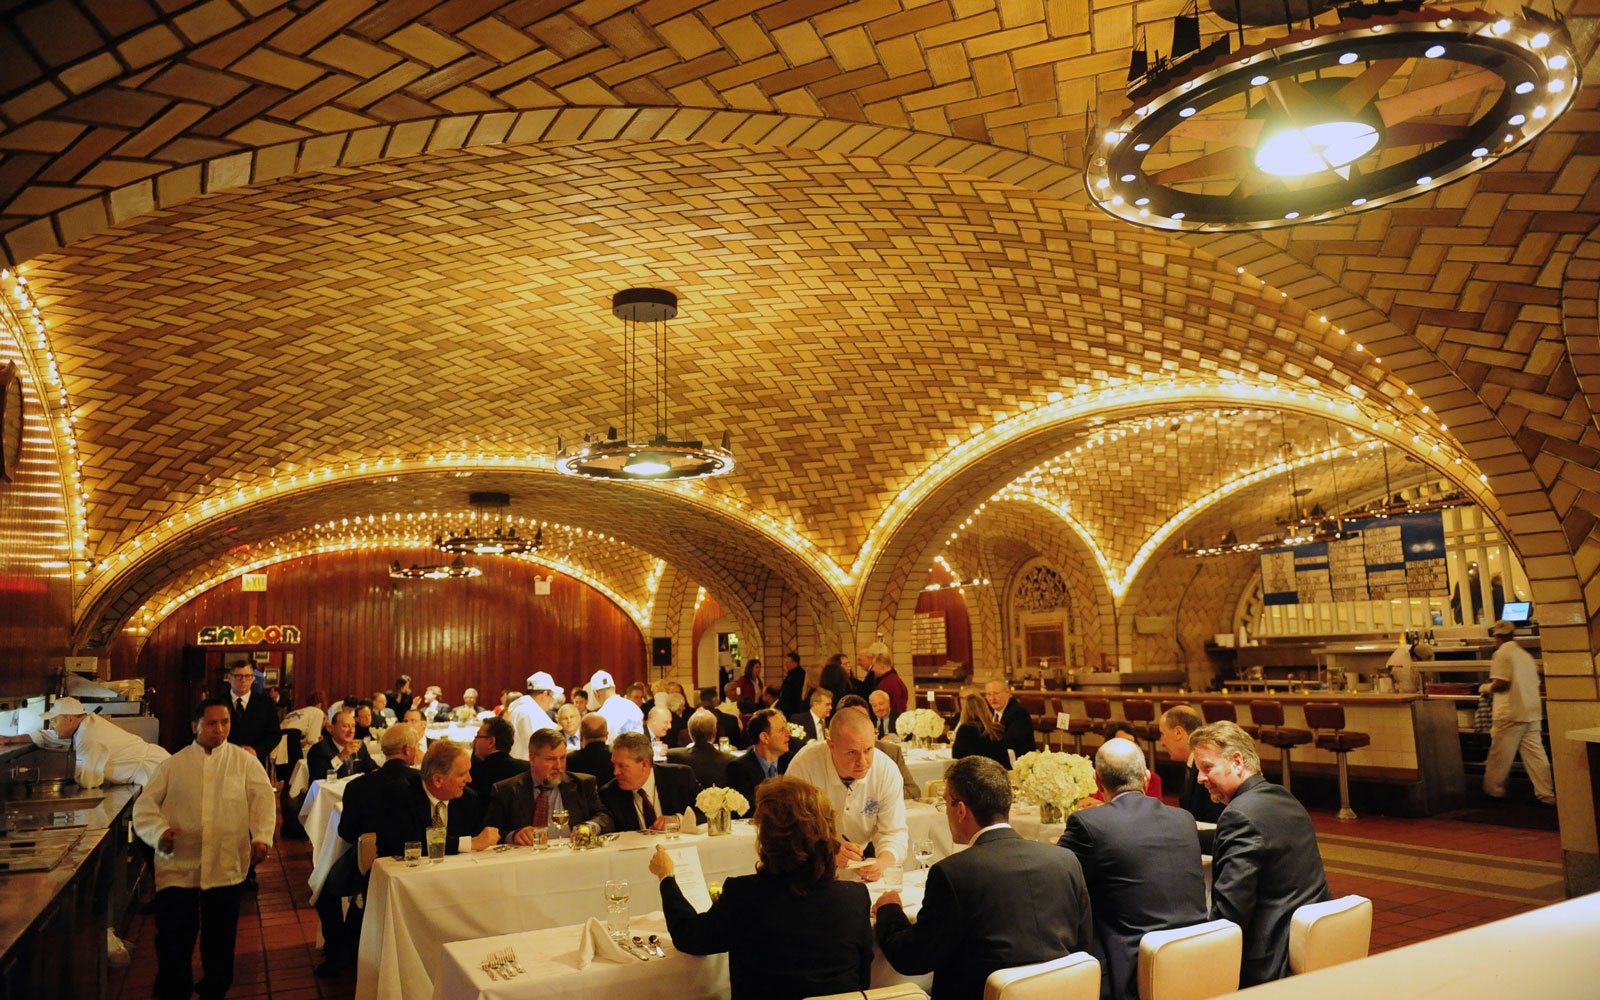 Grand Central Oyster Bar, New York City